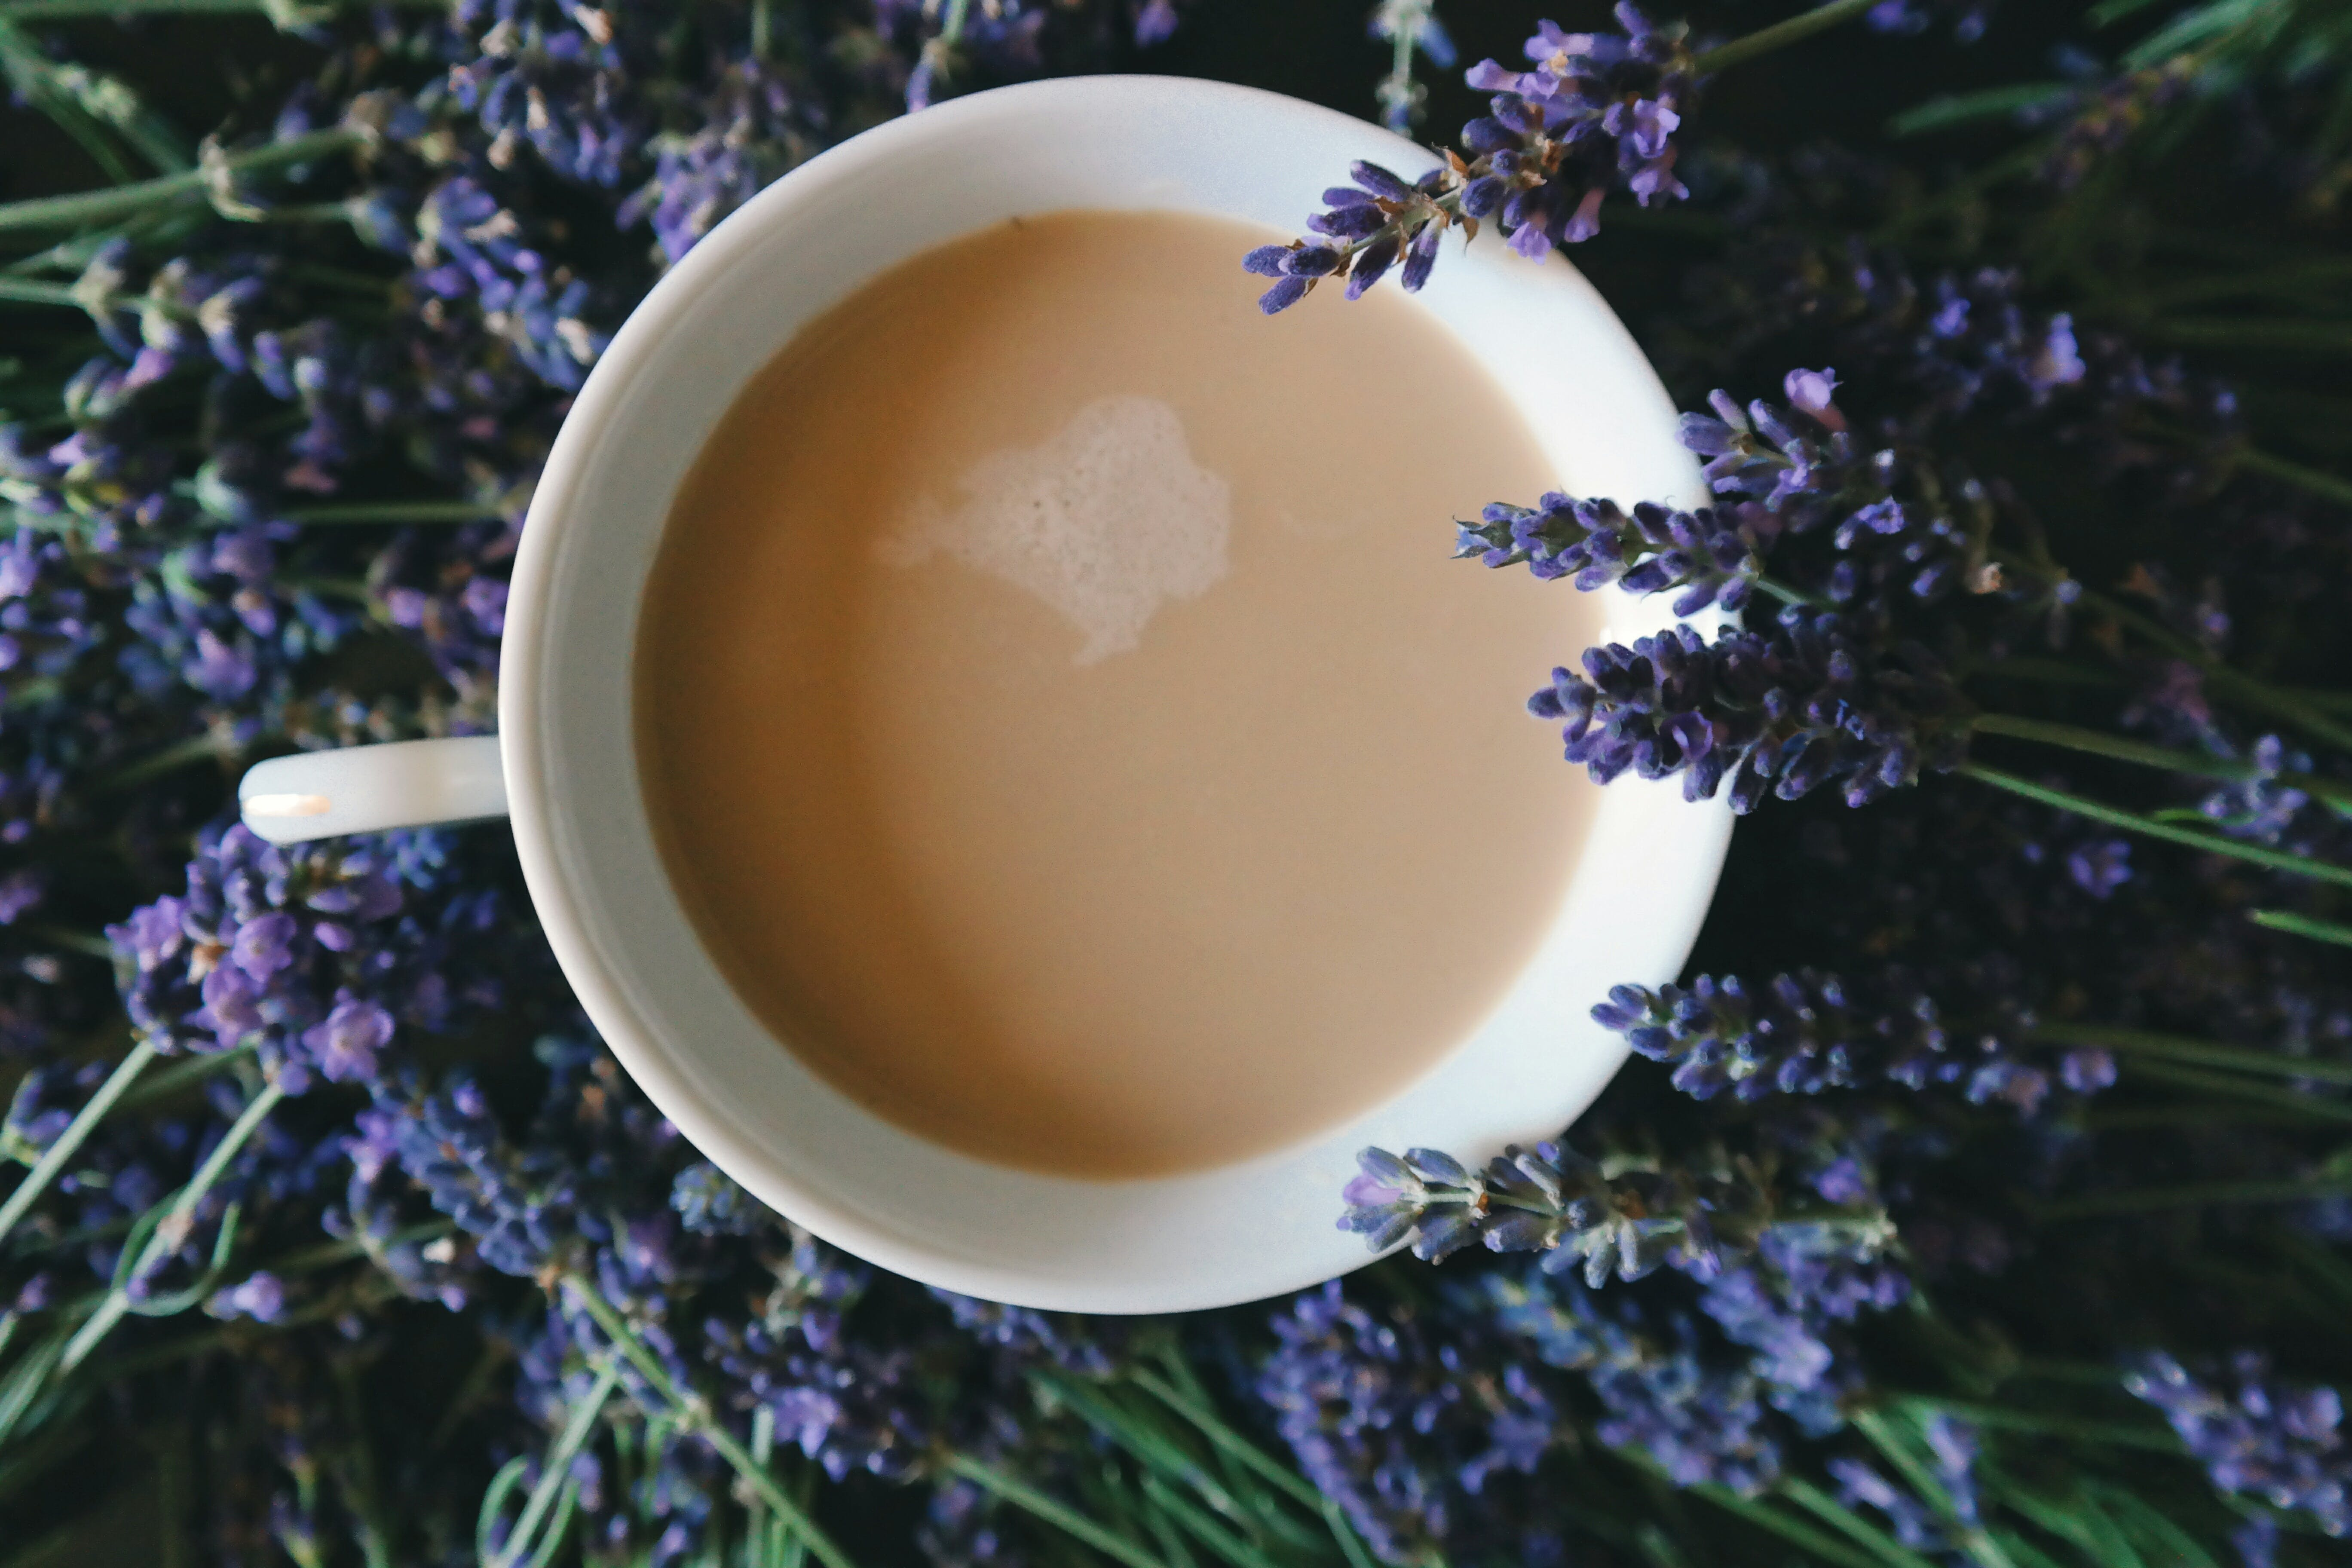 Coffee Filled on Mug Surrounded by Purple Flowers